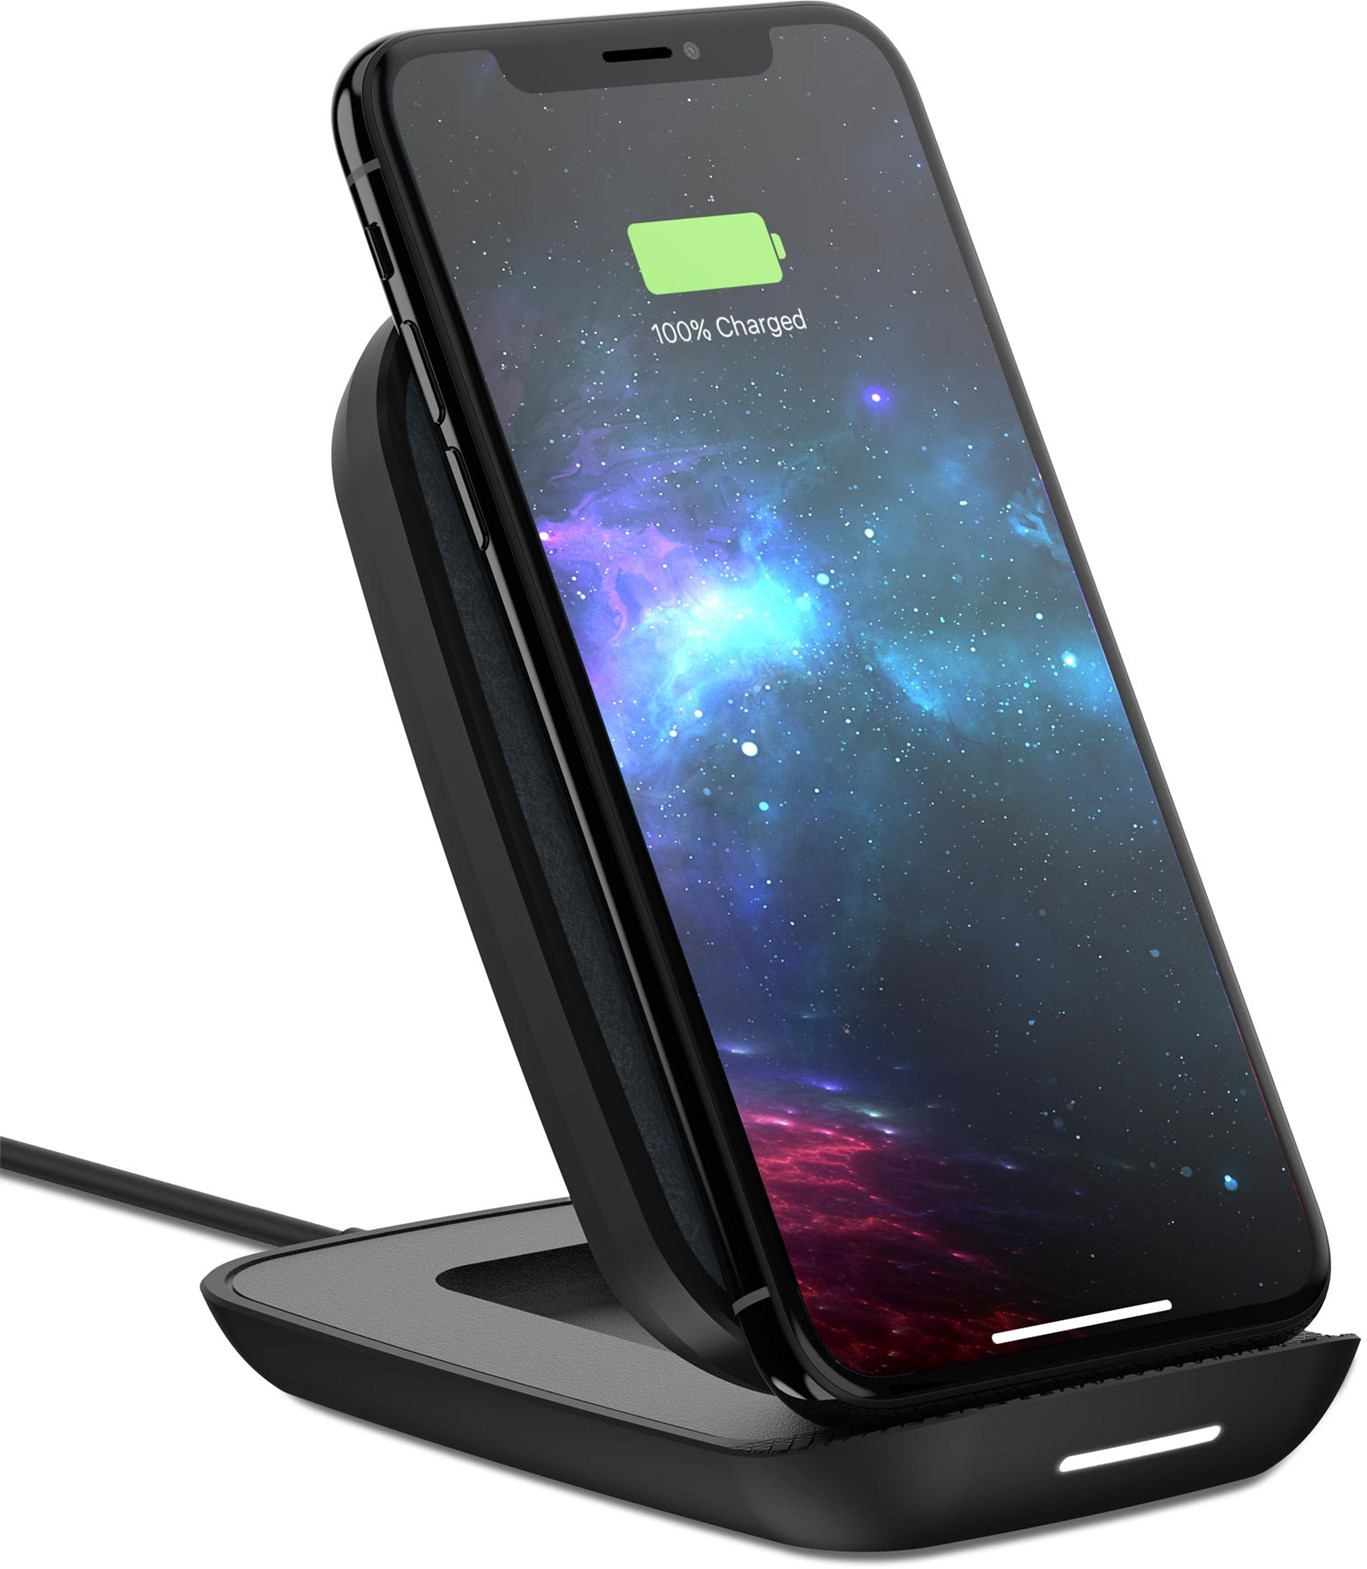 Mophie Universal Wireless Adjustable Charging Stand Eu - Black